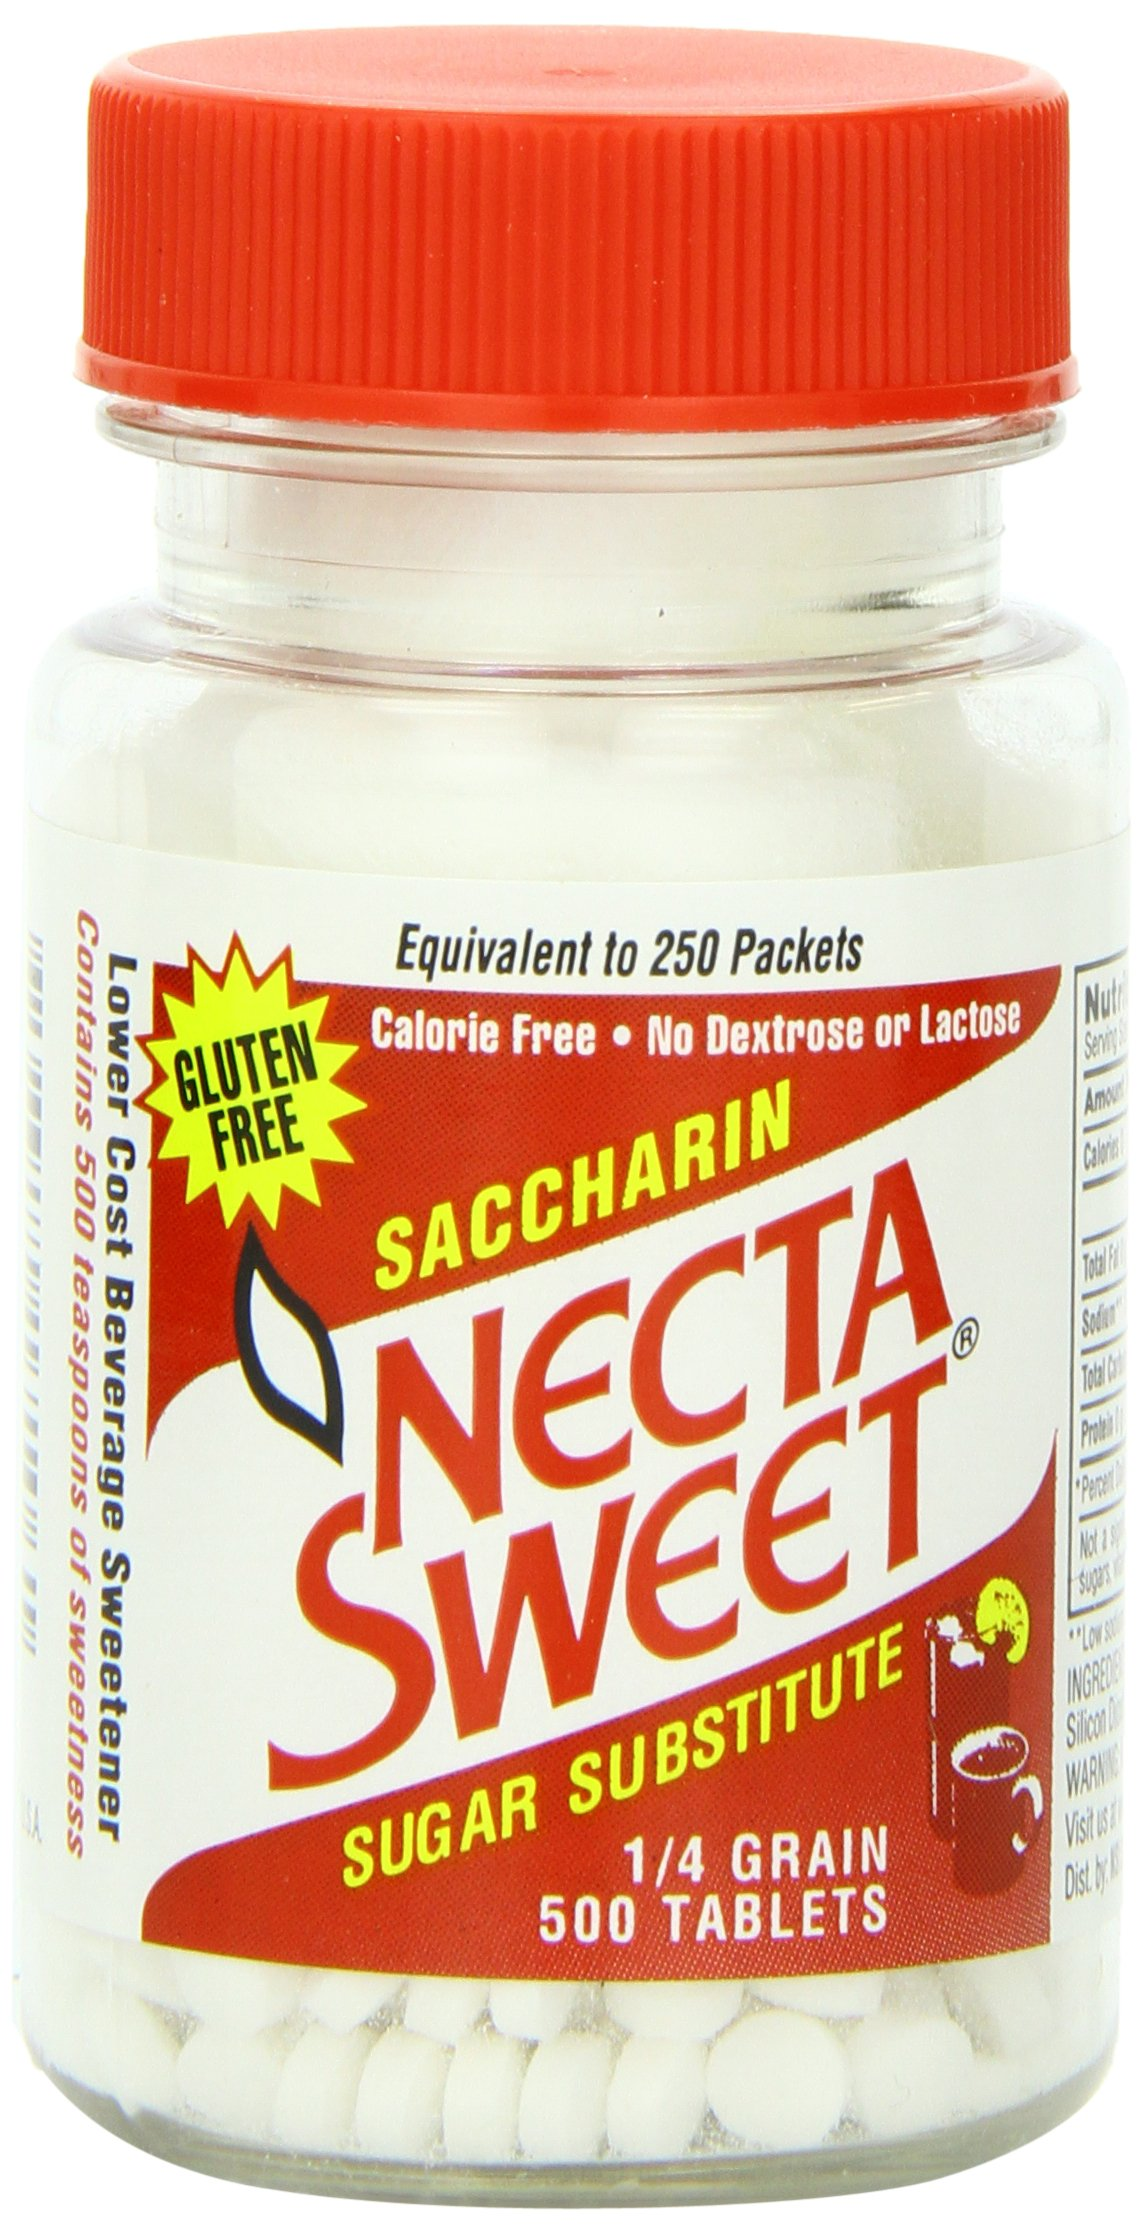 Necta Sweet Sugar Substitute Tablets, 1/4 Grain, 500-Count Bottles (Pack of 12) by Necta Sweet (Image #1)